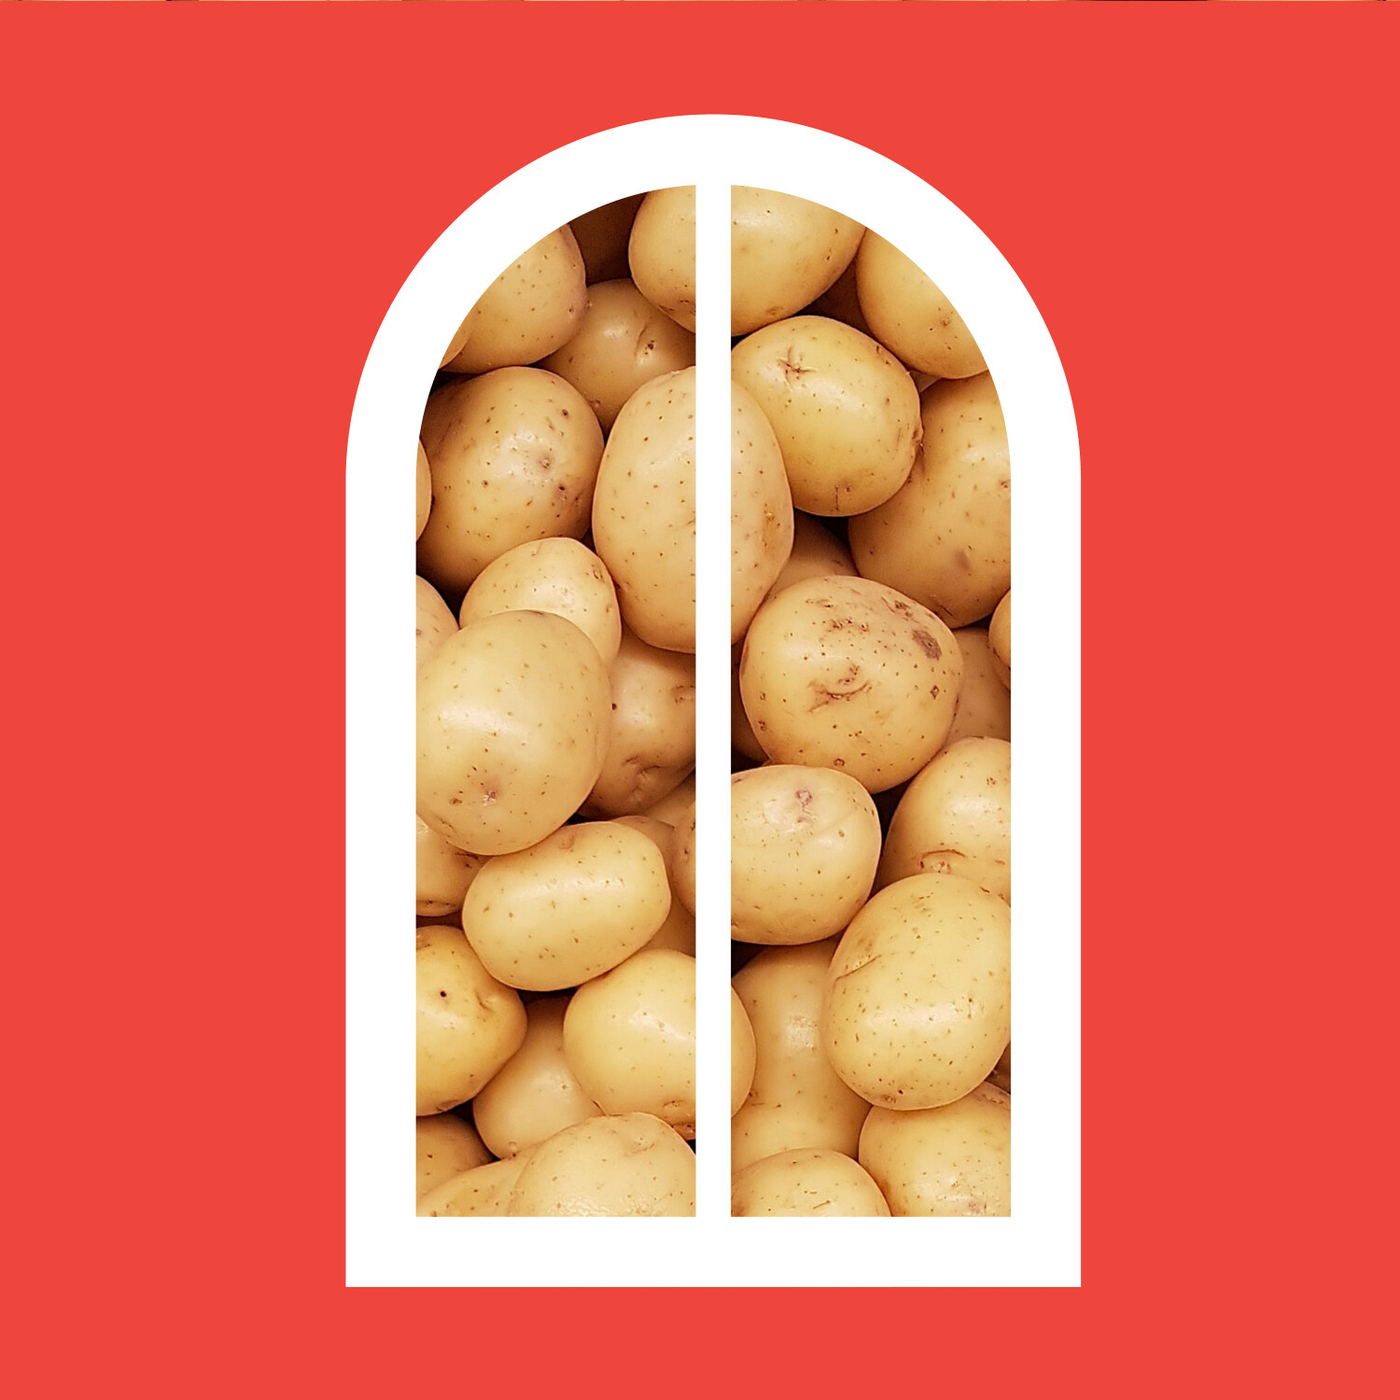 Danish pronunciation: How to speak with a potato in your mouth